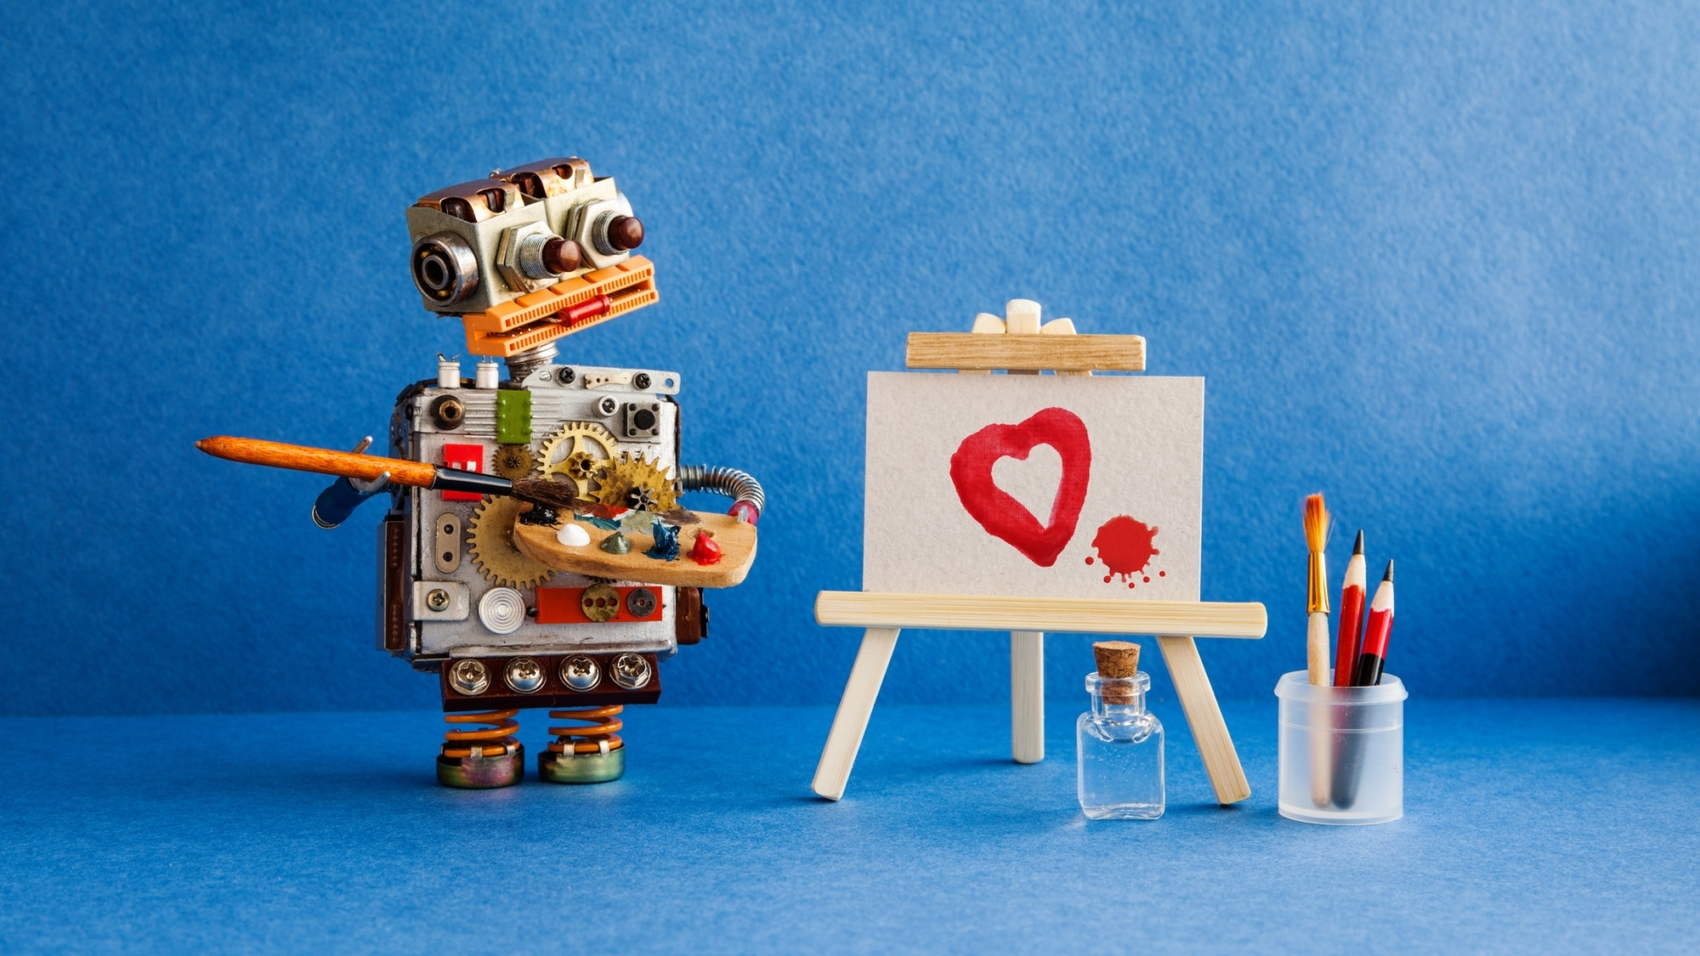 Robot artist with brush in hand looks at the red heart and a blot painted in watercolor on white paper and a wooden easel. Advertising poster studio school of visual arts and drawing. Artist's tools palette, pencils case. Blue background.